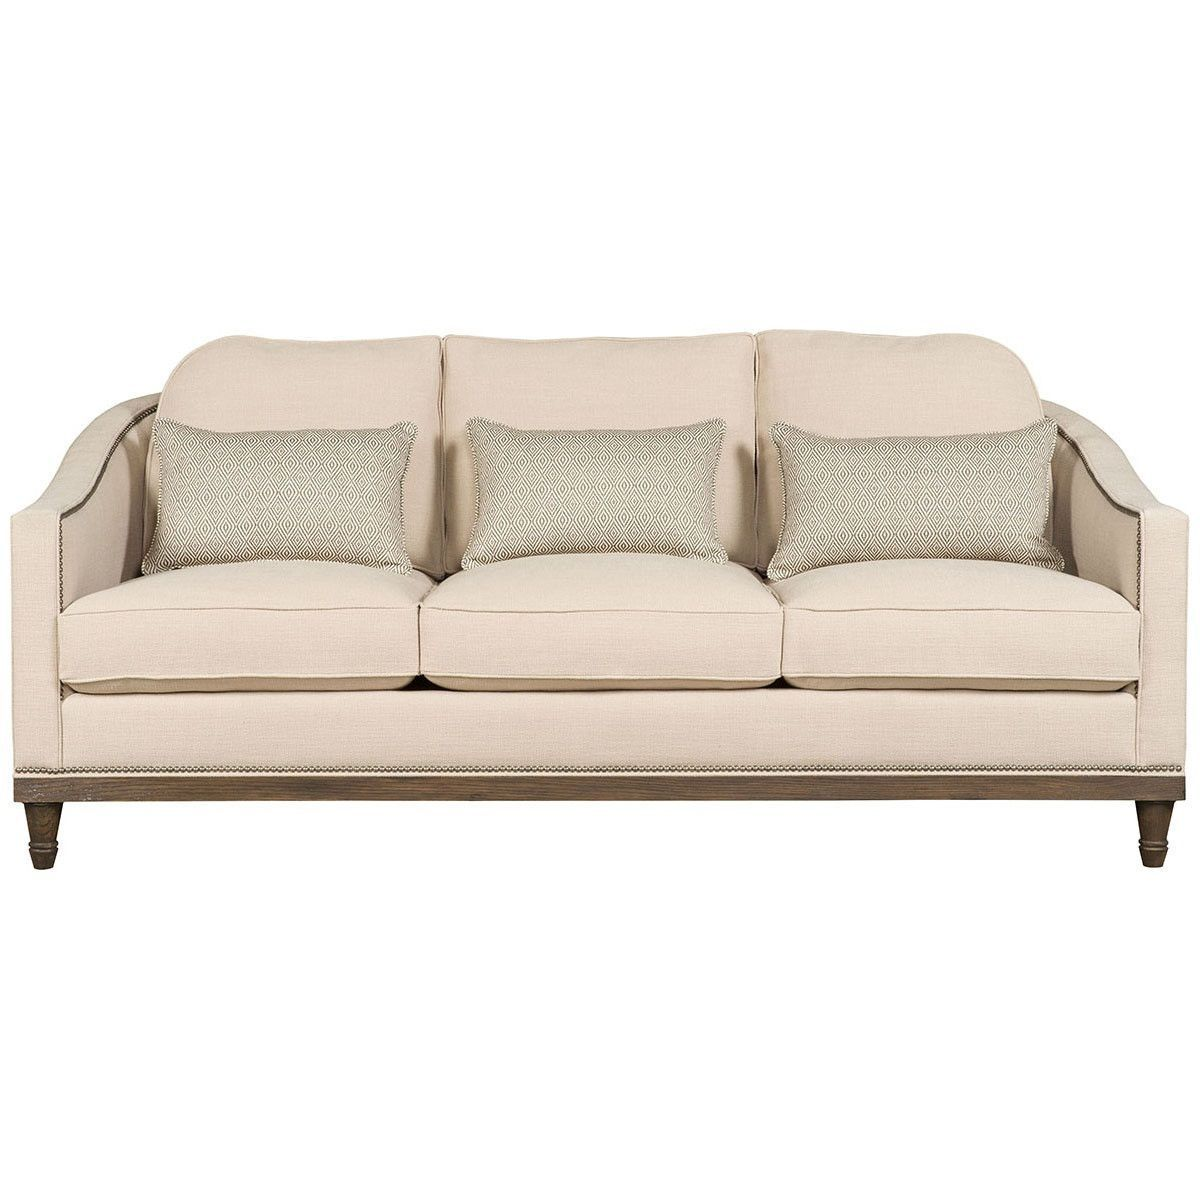 Vanguard Furniture Maguire Sofa Gundeme Alinabilir Sofa